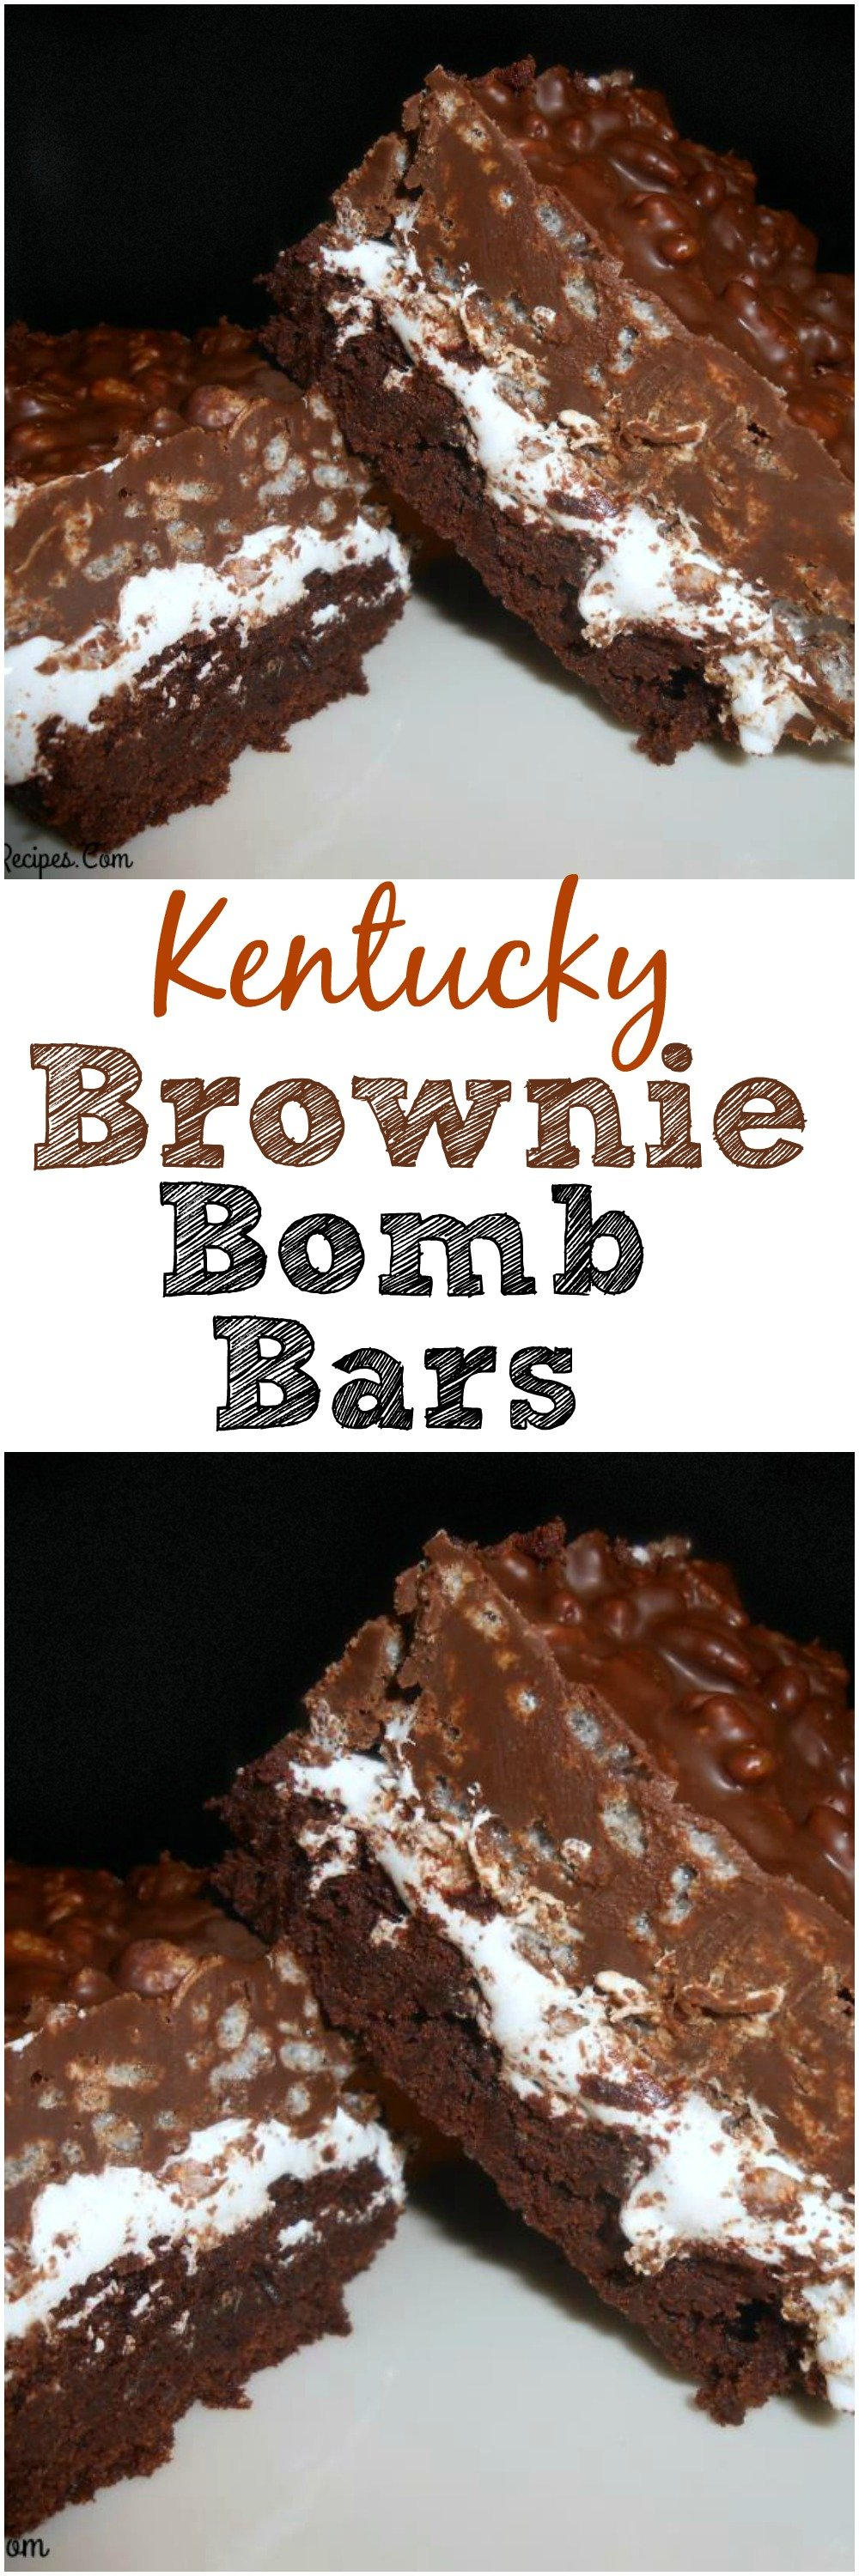 Food Network The Kitchen Brownie Bomb